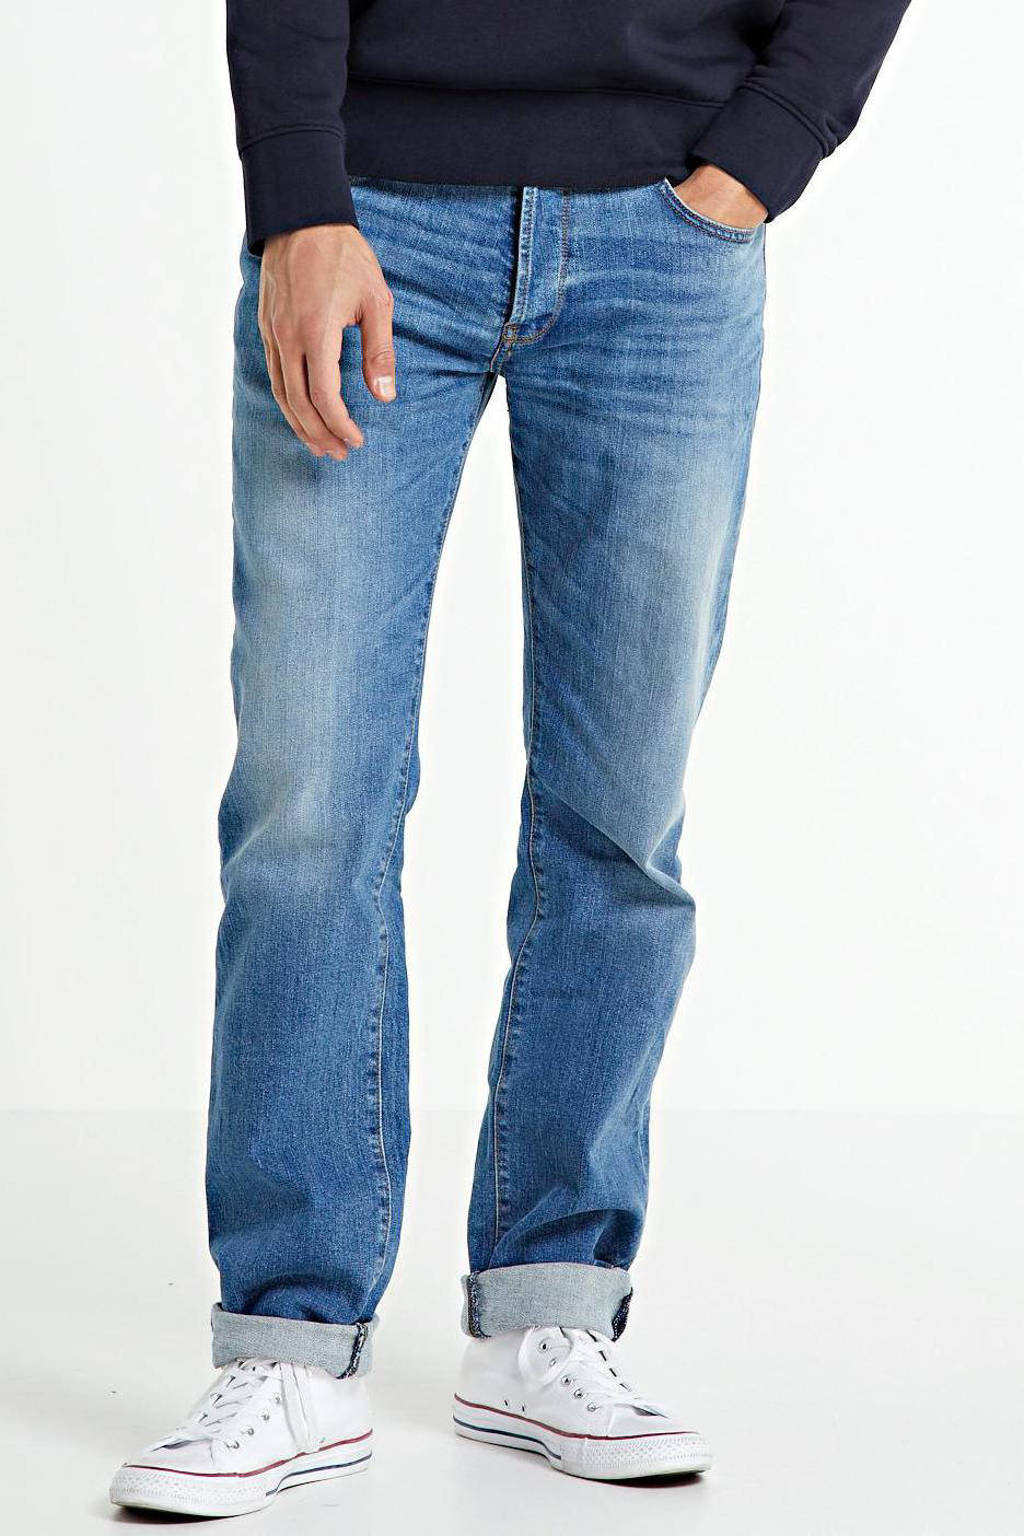 LTB slim fit jeans Hollywood 52867 mellow, 52867 Mellow